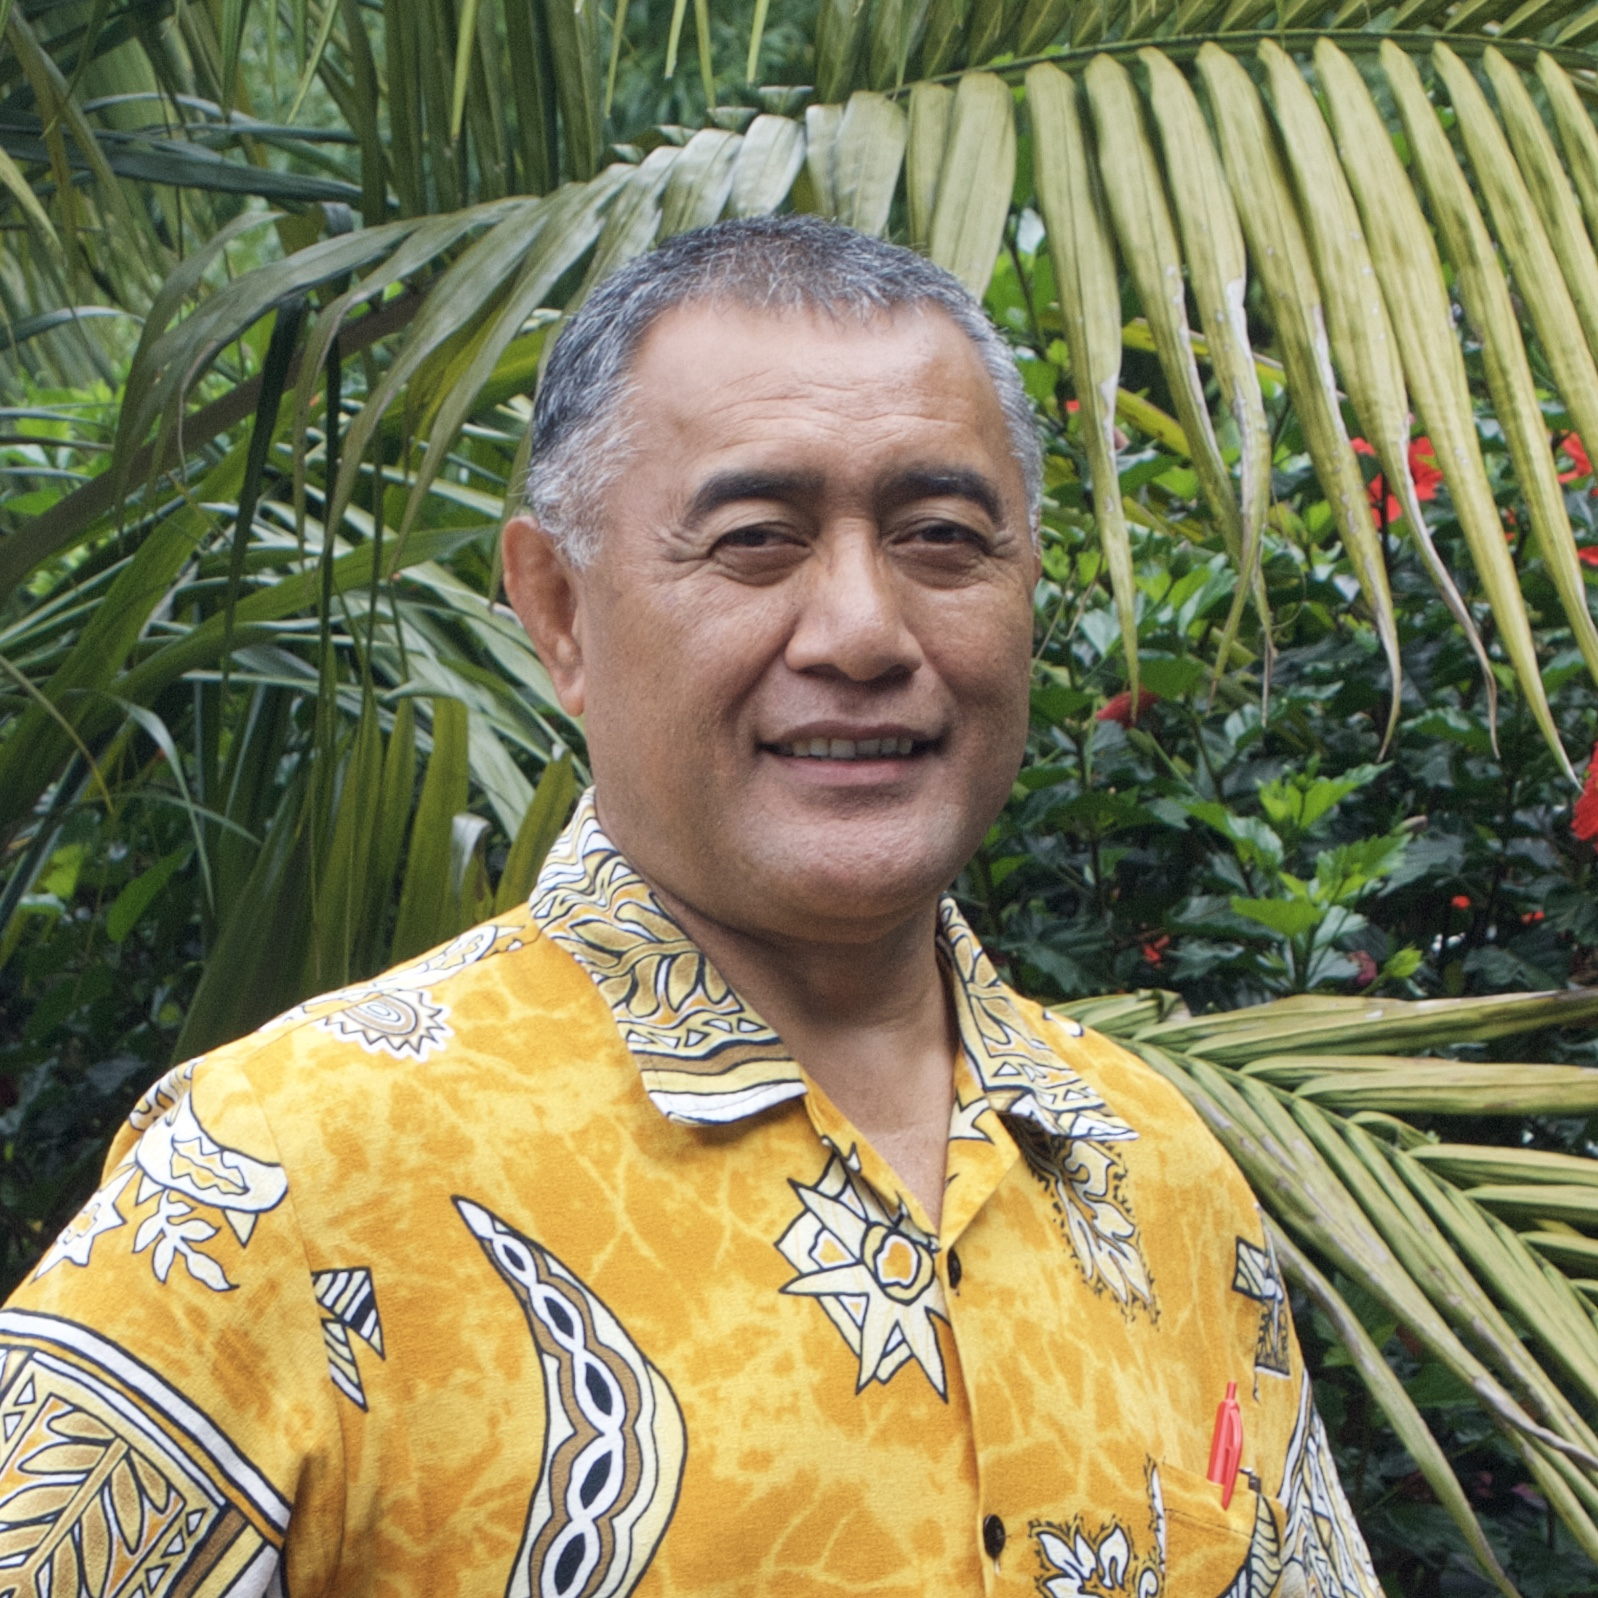 Nuku Rapana   Nuku Rapana is widely respected in the Auckland region for his contribution to Pacific communities, particularly the Cook Island community.  Nuku has been President of the Pukapuka Community since 1995, and was instrumental in the development of a community centre for the group in Mangere.  Pukapuka is a coral atoll in the northern corner of the Cook Islands. People from Pukapuka started settling in New Zealand after WW1 - sponsored by a soldier from Pukapuka who had married a Ngati Whatua woman.  Nuku Rapana is the 8th leader of the community - which aims to help it's members improve their quality of life.  Nuku has been with Family Start Manukau since it's inception.  He says he's proud of the growth of the organisation - and the number of people it helps.